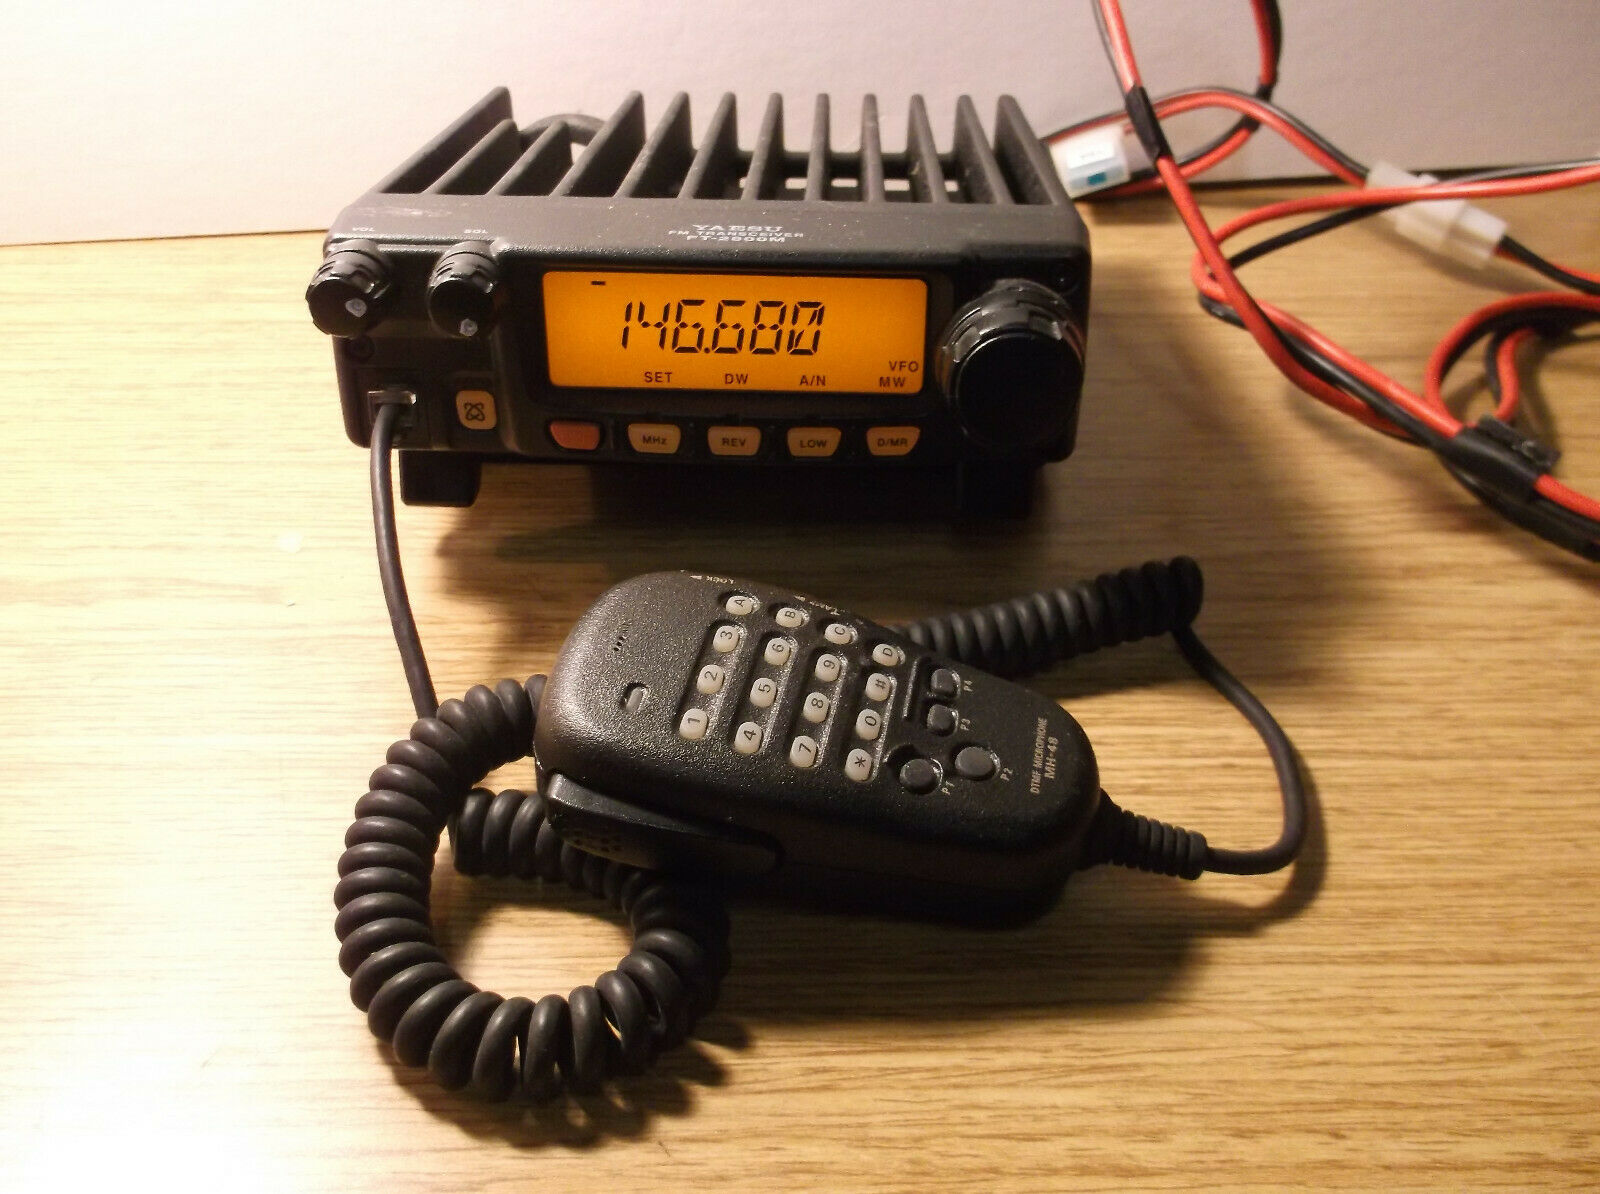 YAESU TRANSCEIVER FT2800M -  WORKING. Available Now for 149.00